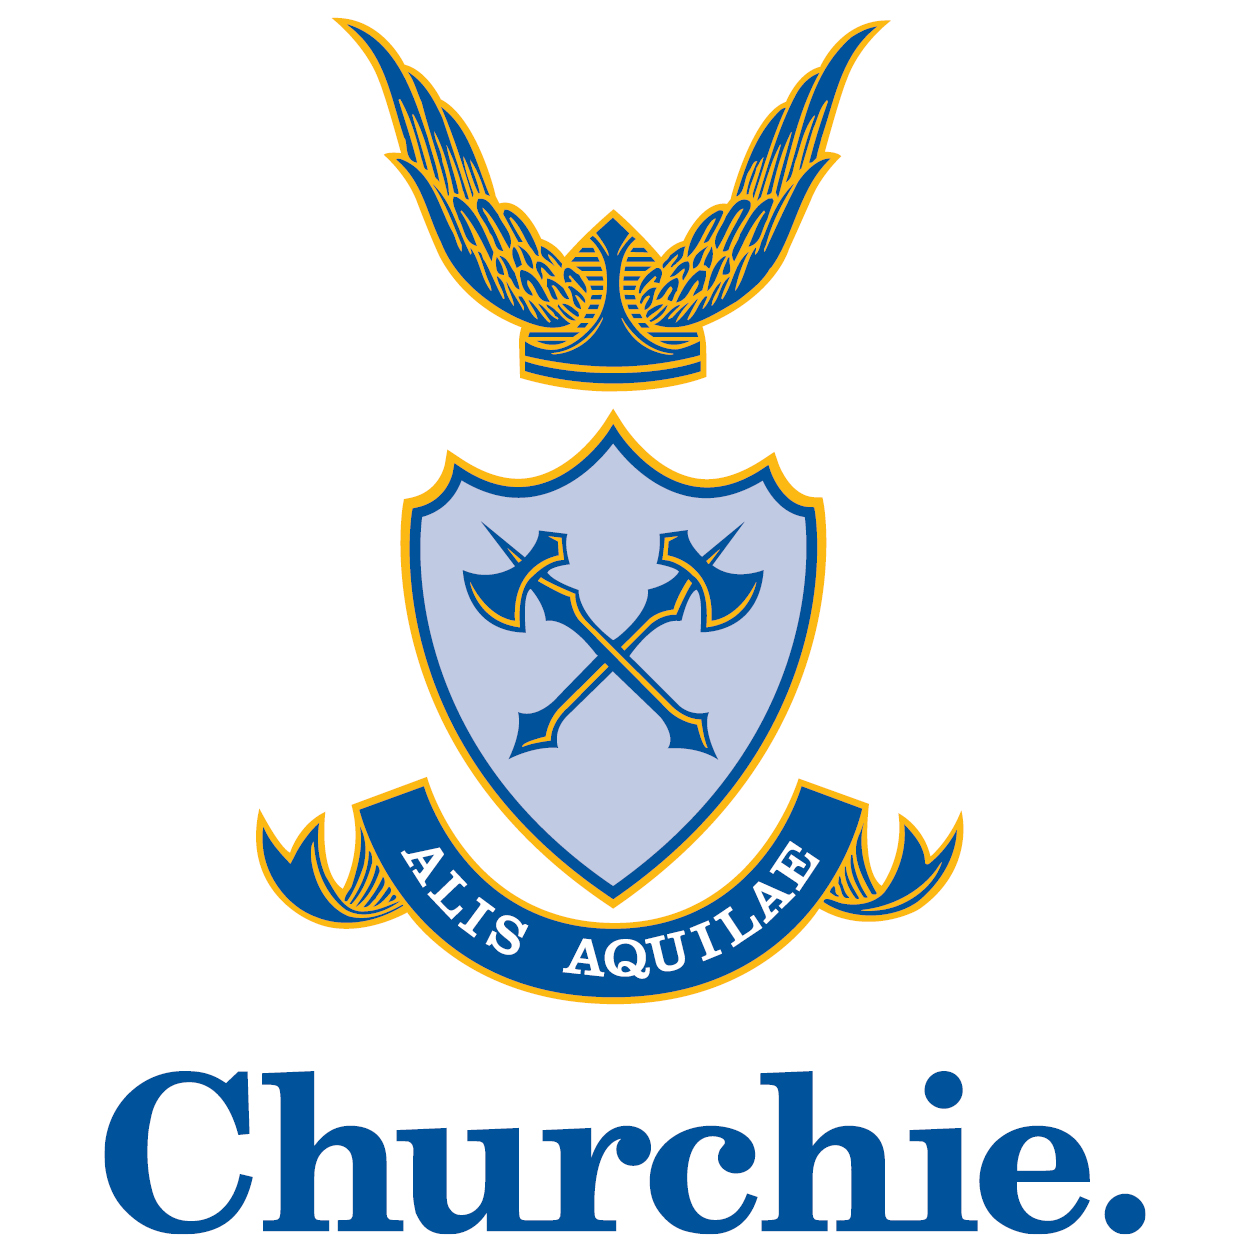 Anglican Church Grammar School (Churchie)